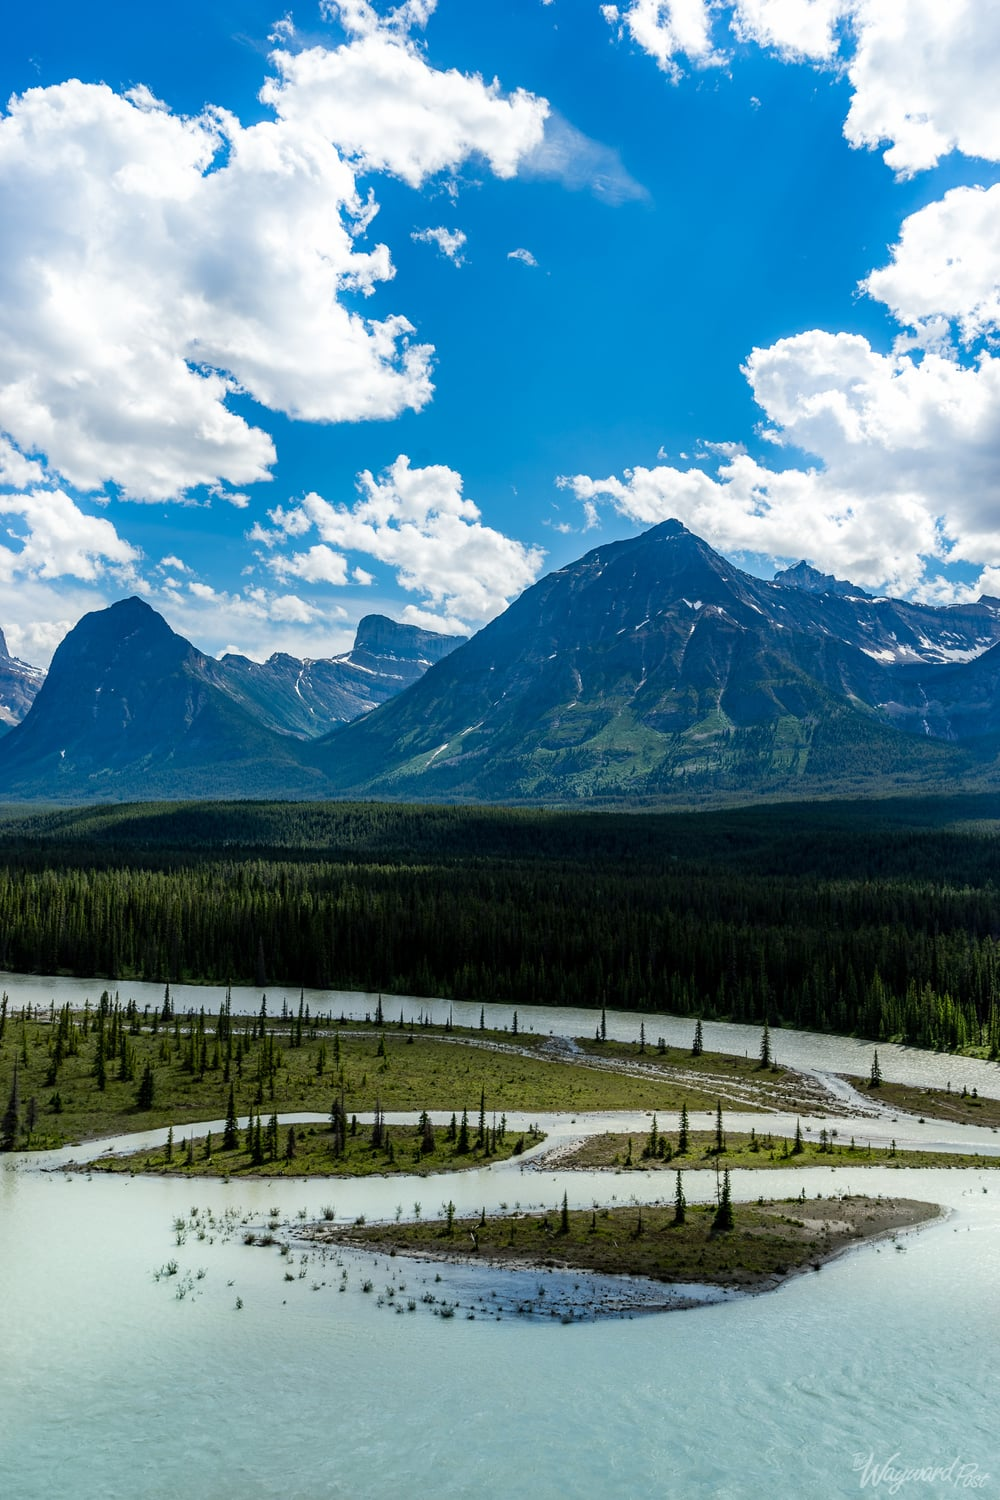 Bow River on Icefield Parkway - The Wayward Post - Photo Story - Jasper National Park, AB Canada